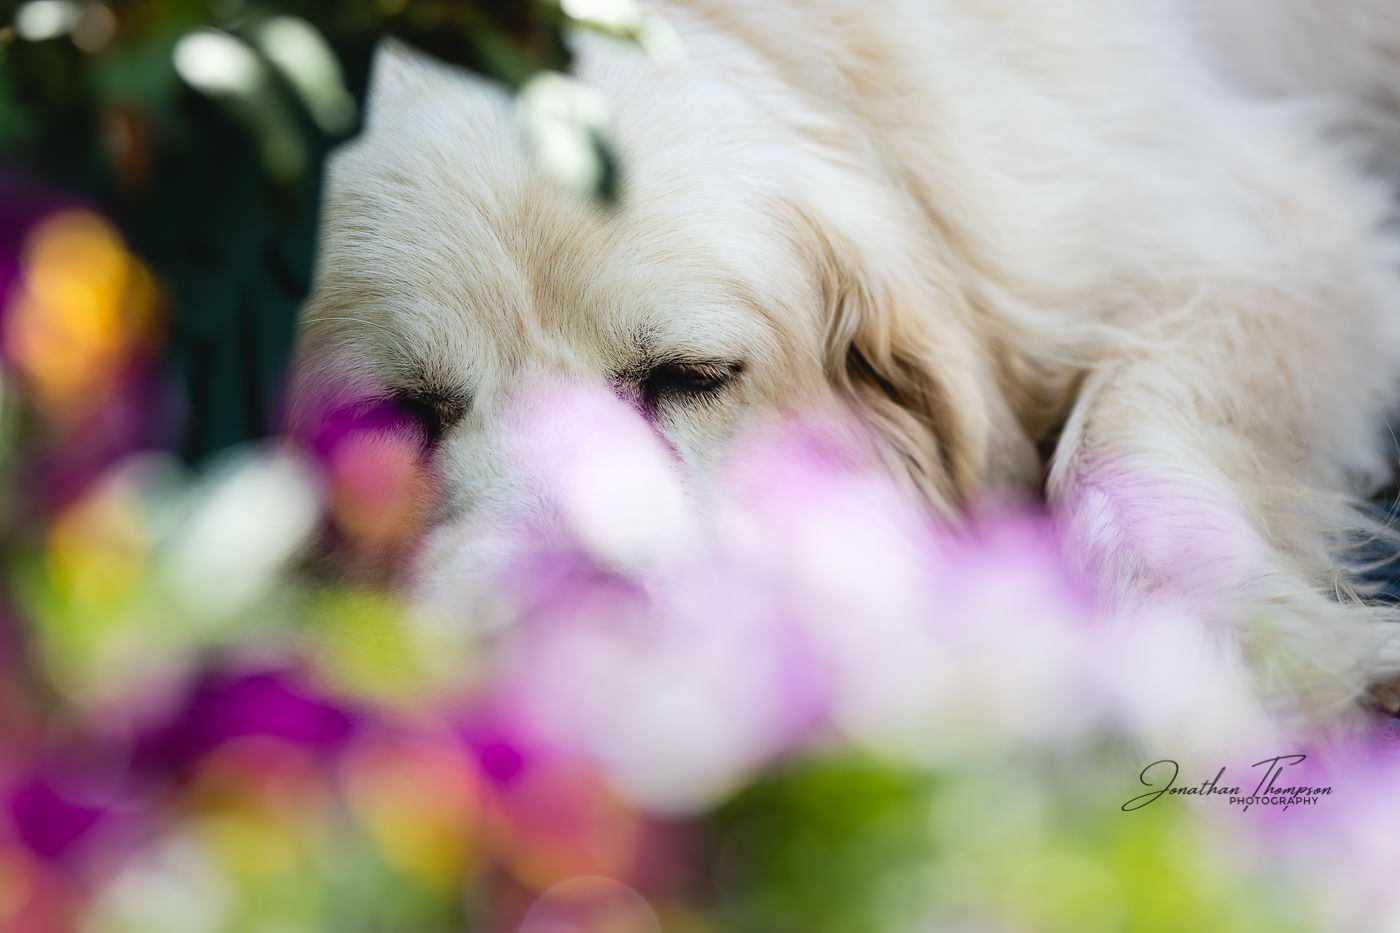 Tundra the Pyrenees Mountain Dog sleeping. Foreground has colourful out of focus flowers